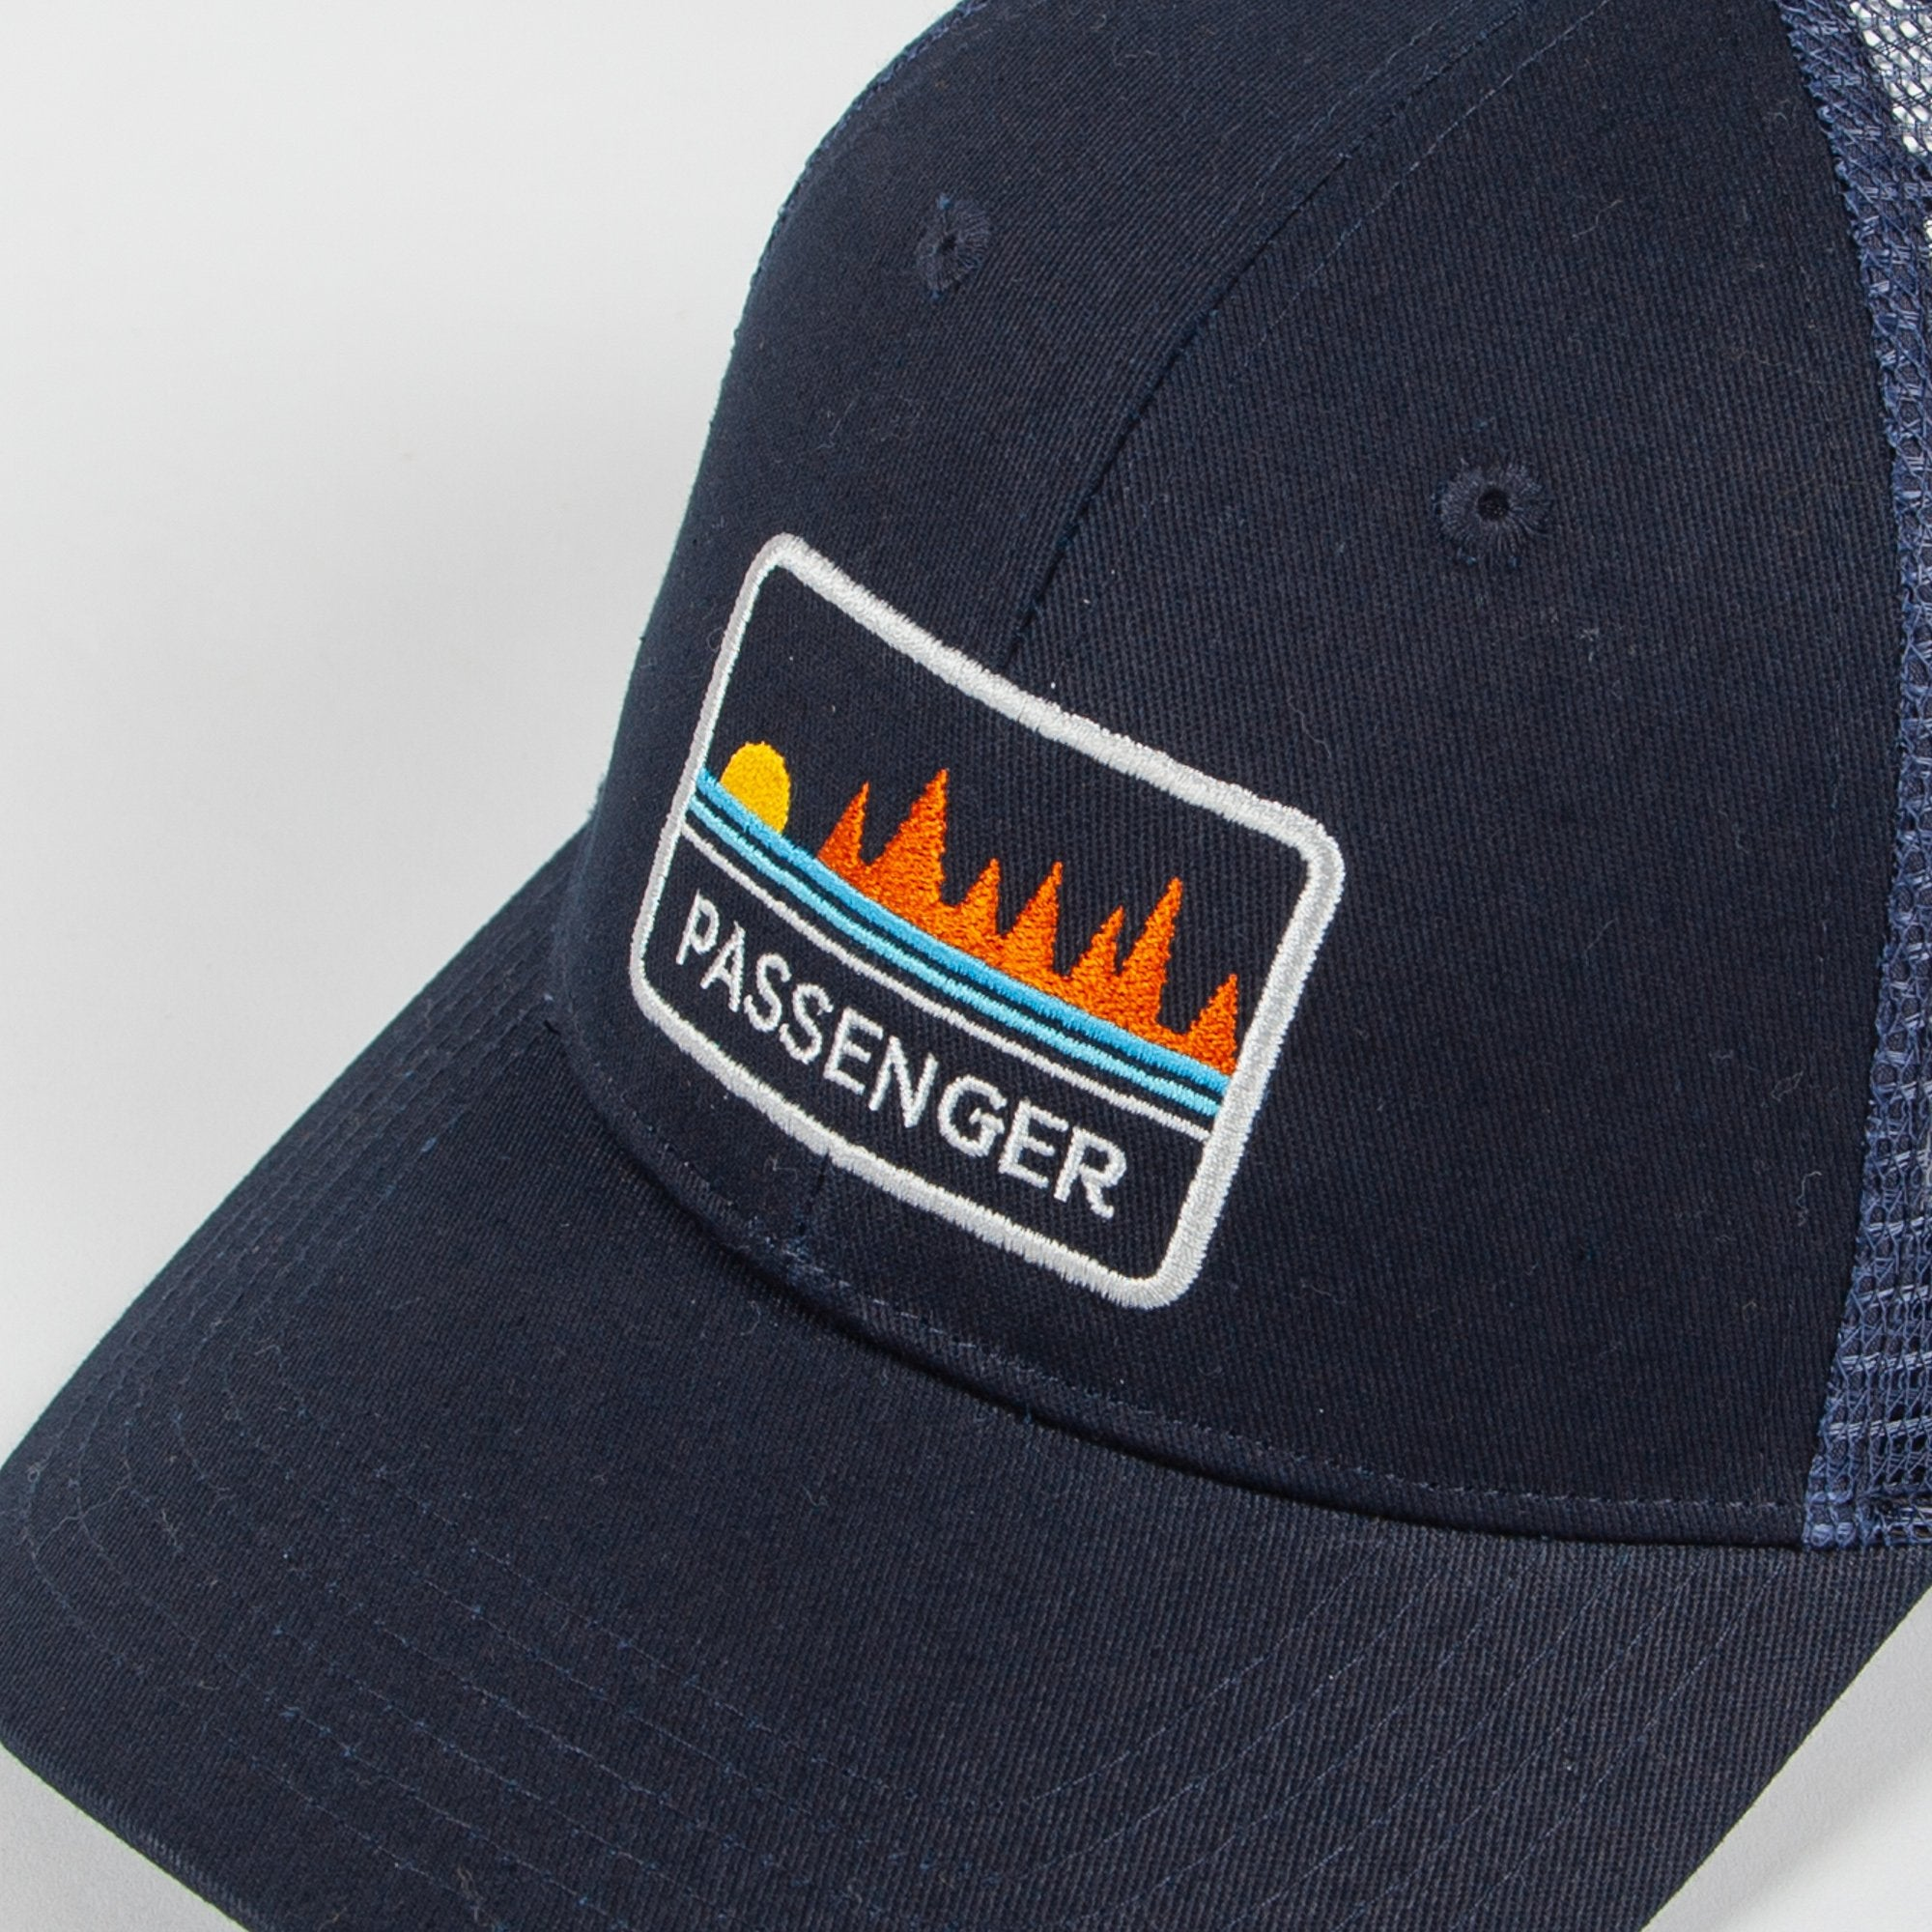 Kombi Cap - Blue Nights Navy image 3